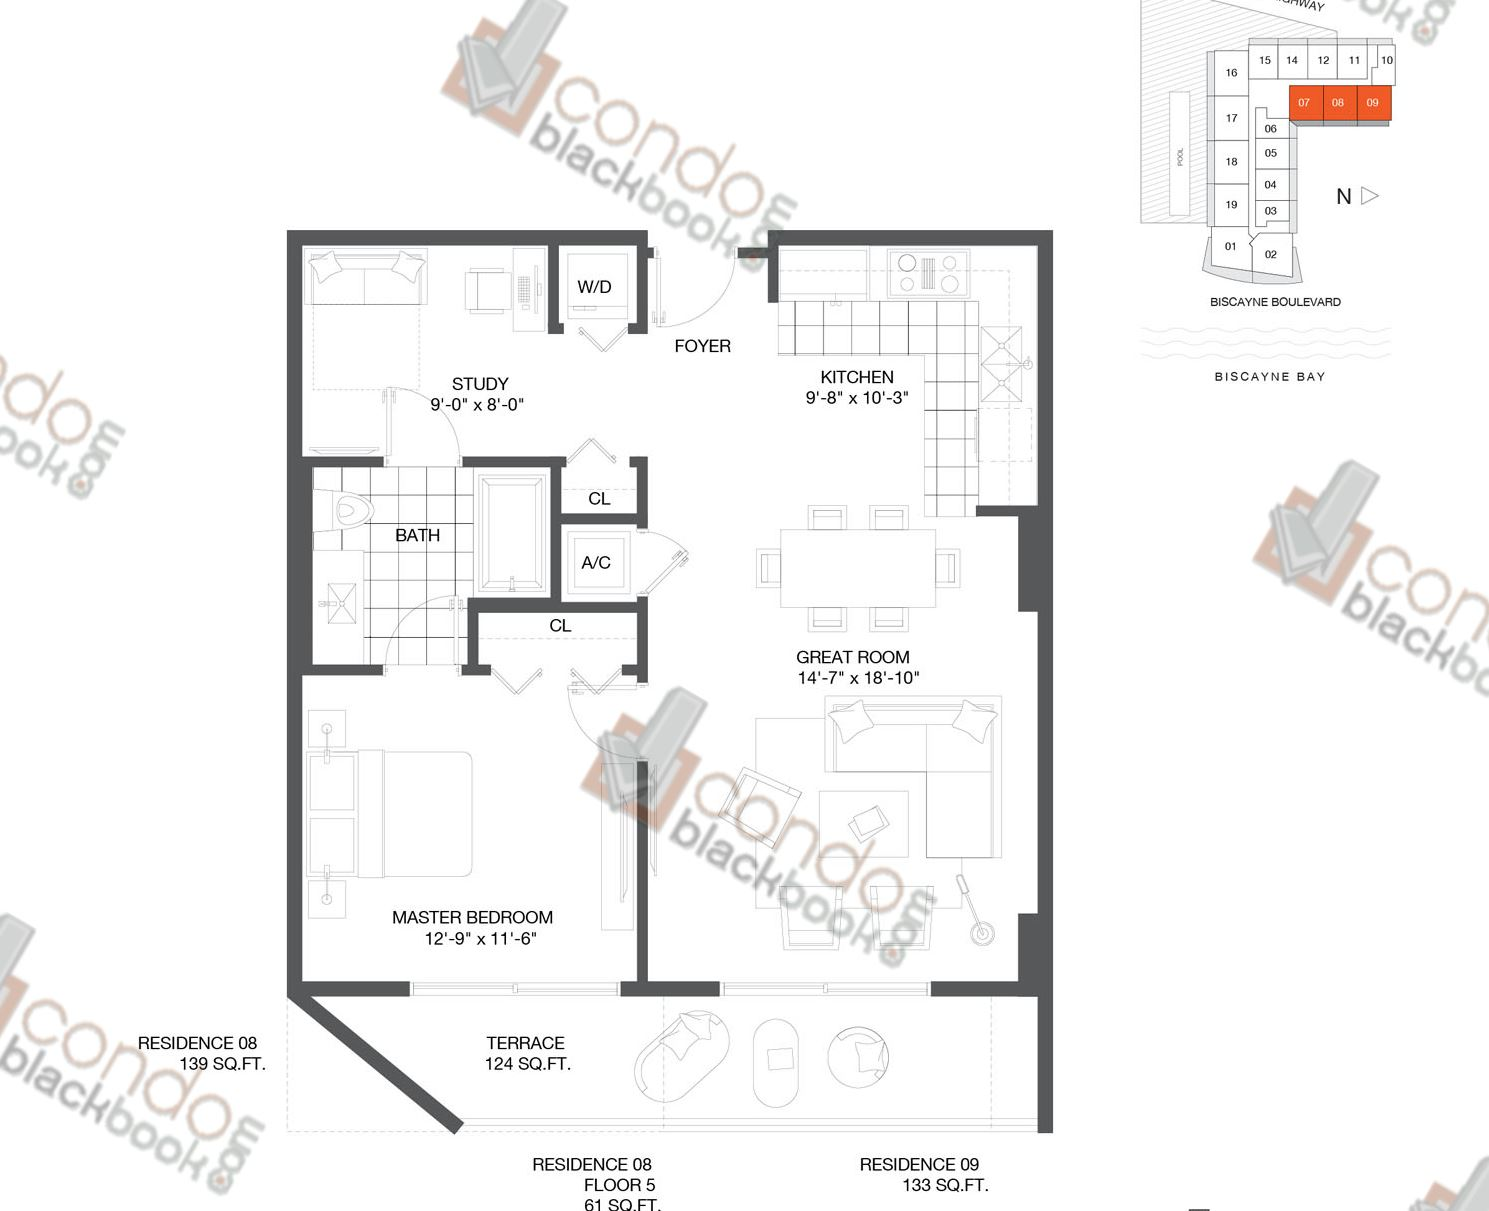 Floor plan for Baltus House Design District / Buena Vista Miami, model Residence 07, 08, 09, line 07, 09, 1/1+DEN bedrooms, 790 sq ft